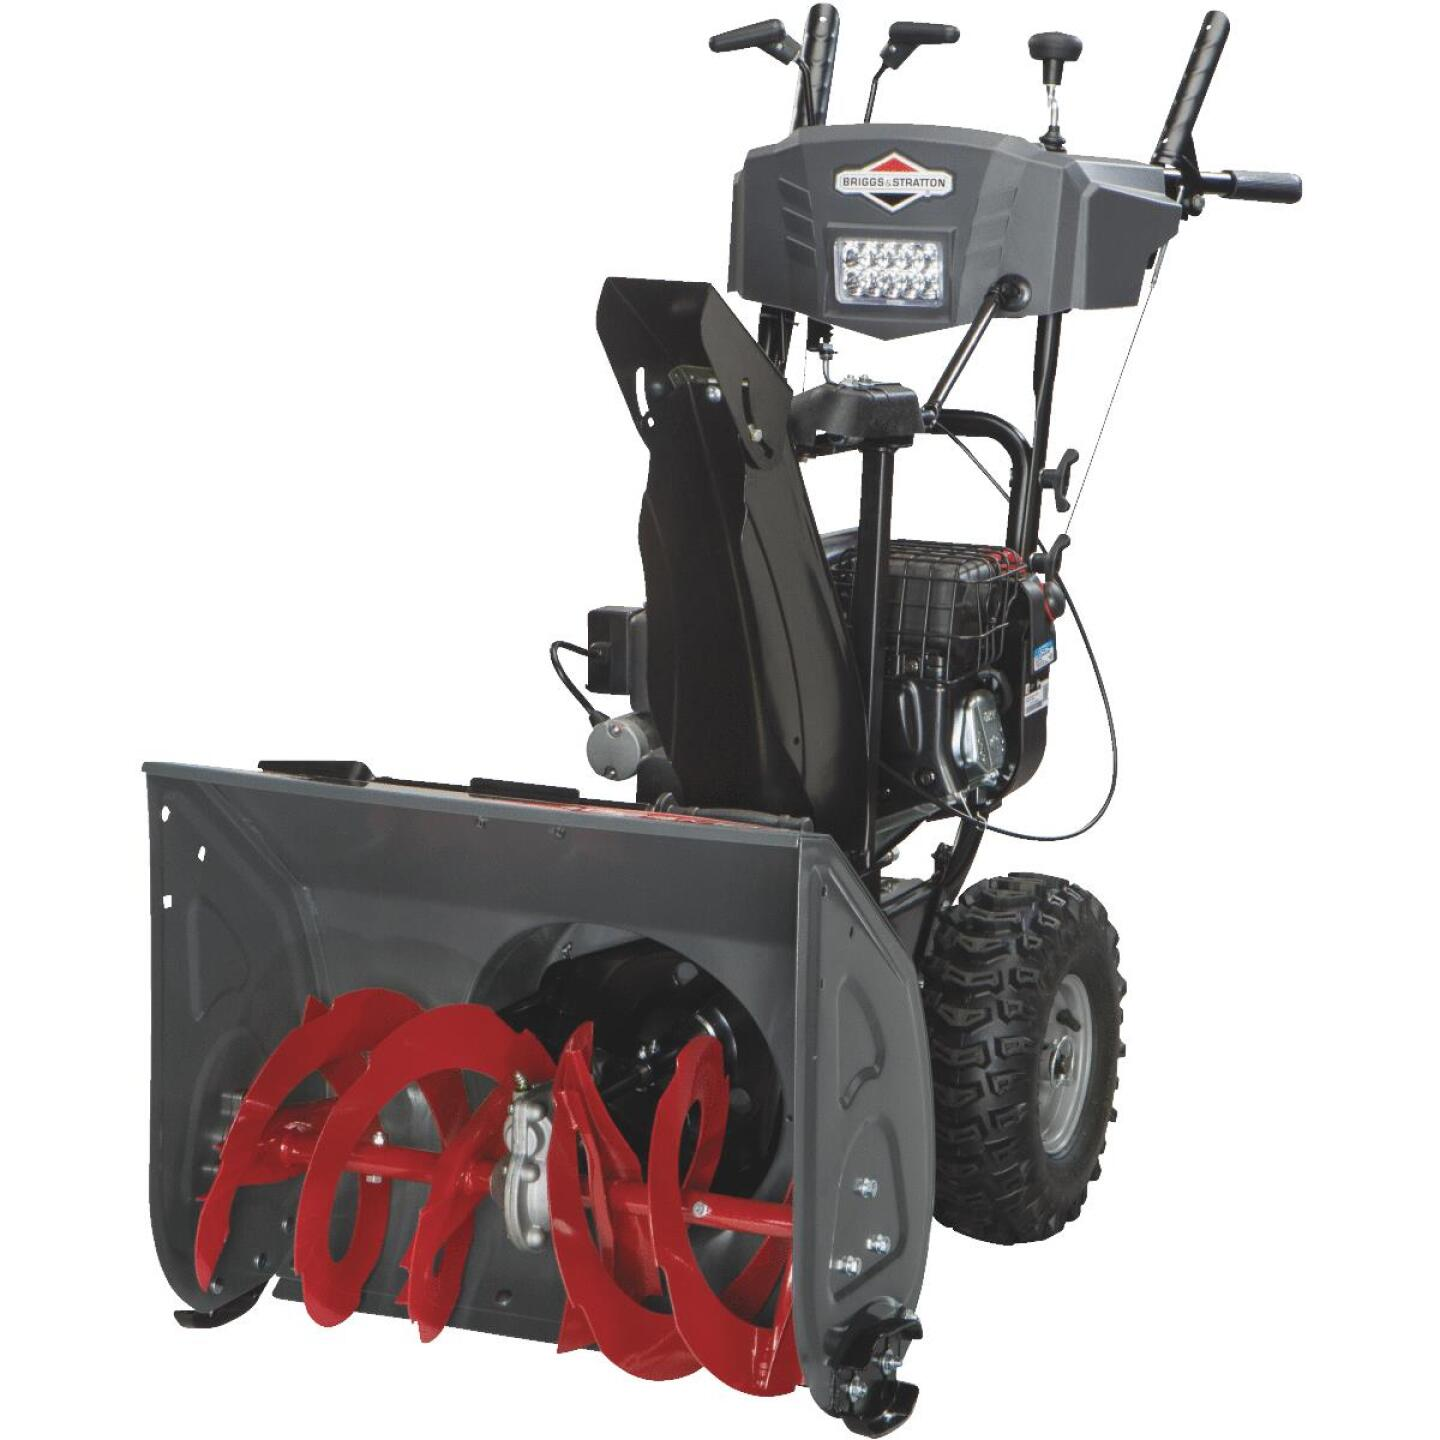 Briggs & Stratton 24 In. 208cc 2-Stage Gas Snow Blower Image 1